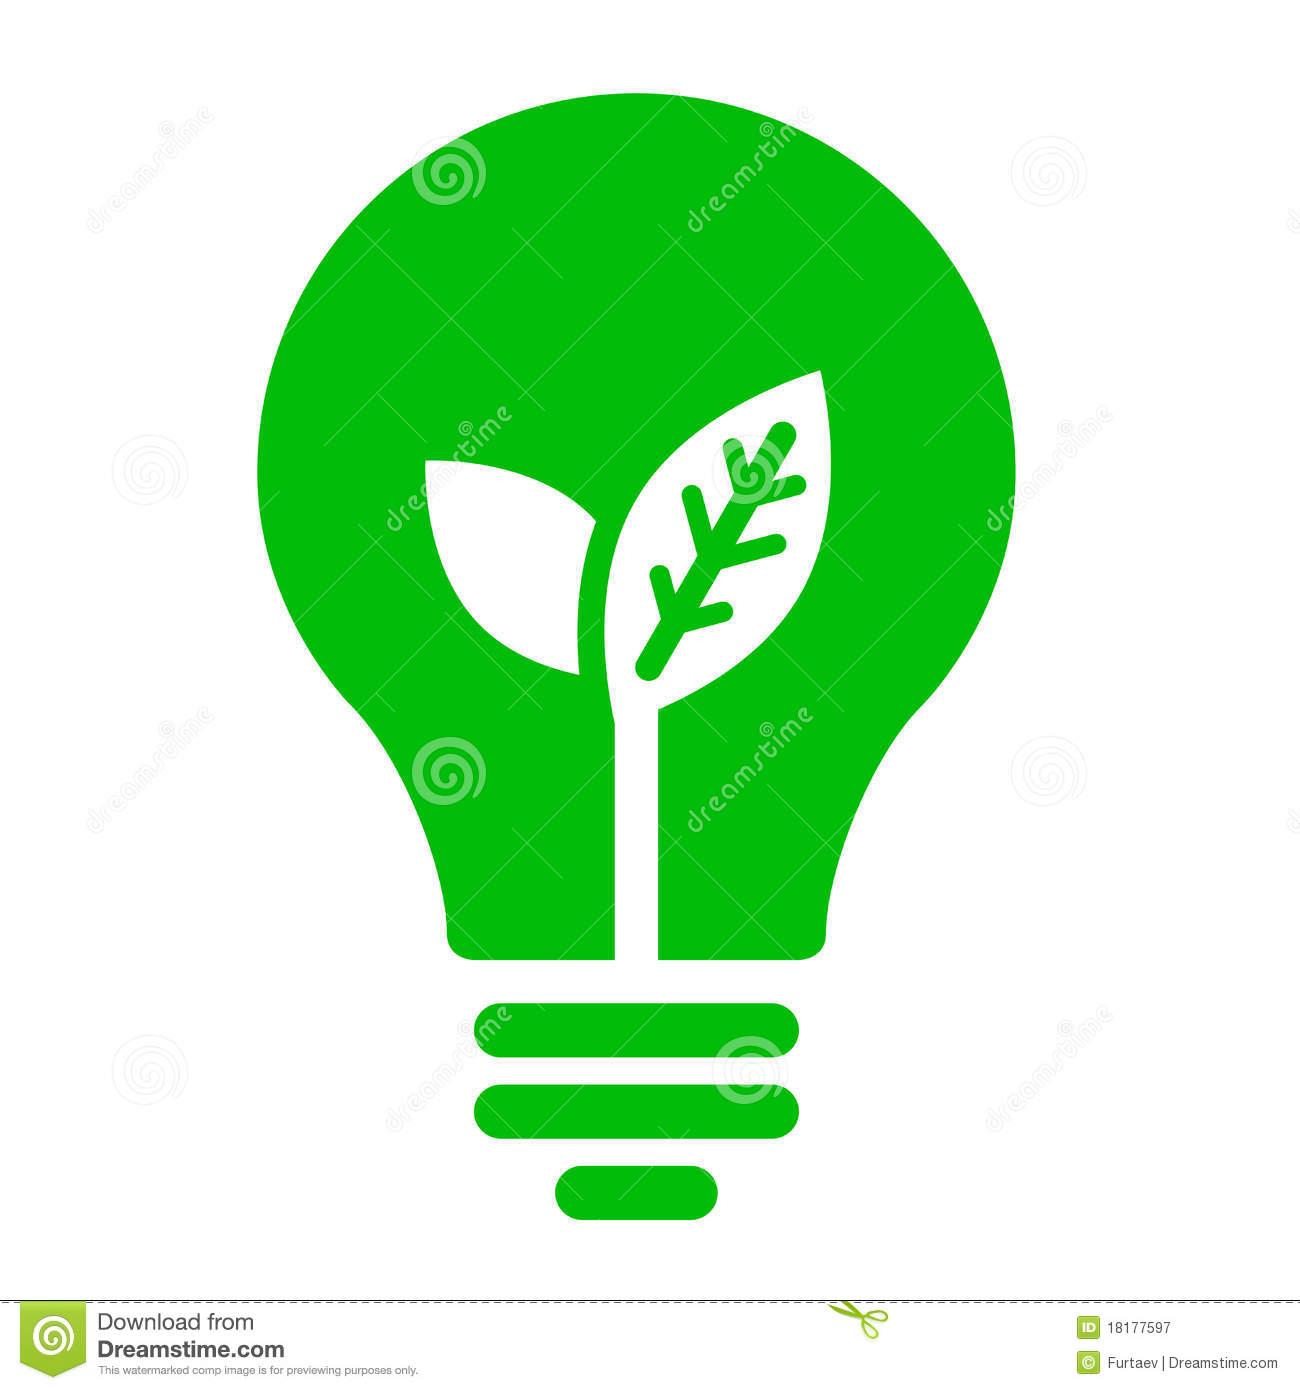 Ecology bulb icon stock vector. Illustration of future ...